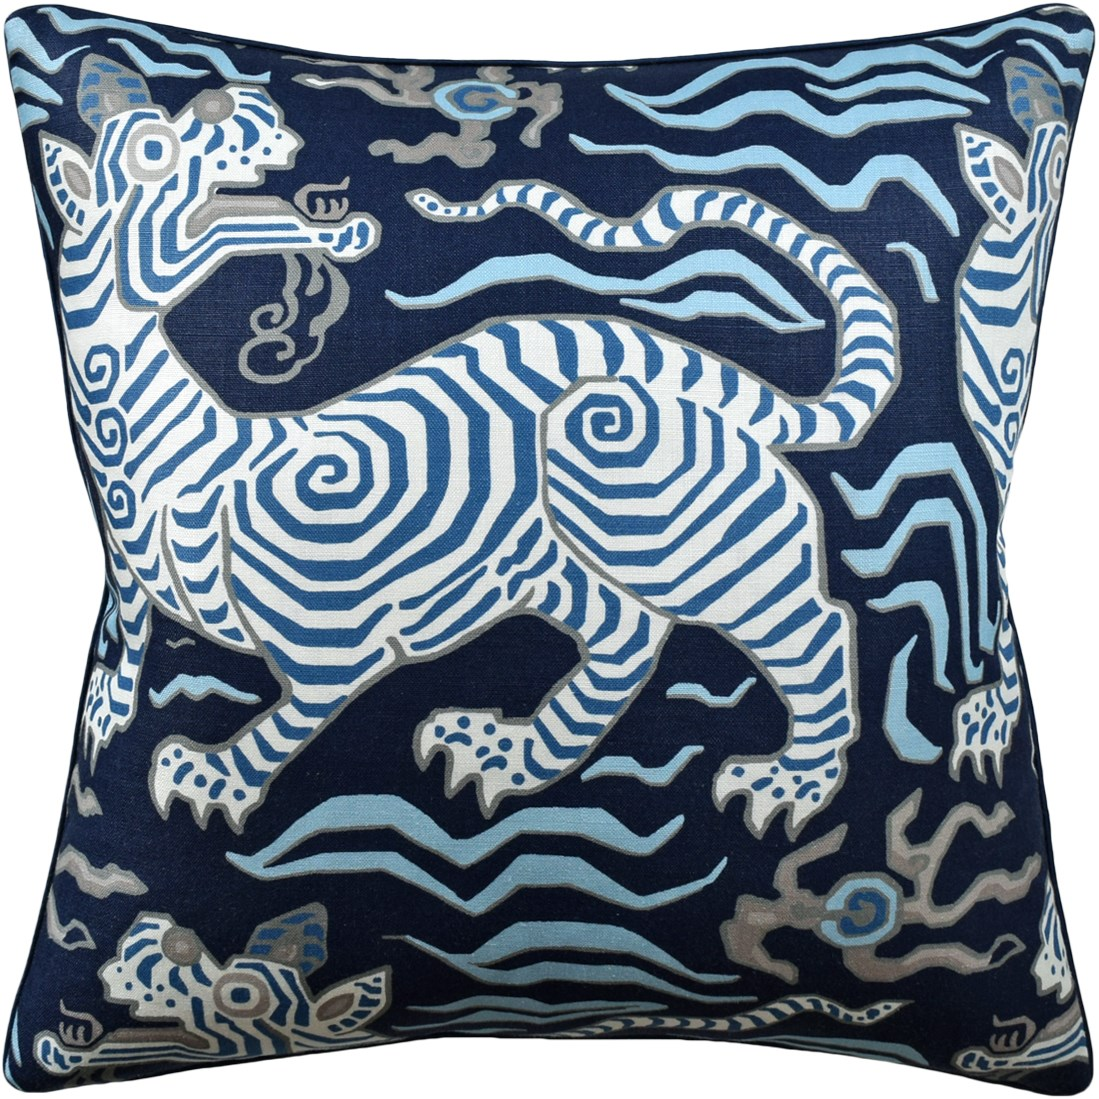 Big Cat Pillow Blues-$338.00